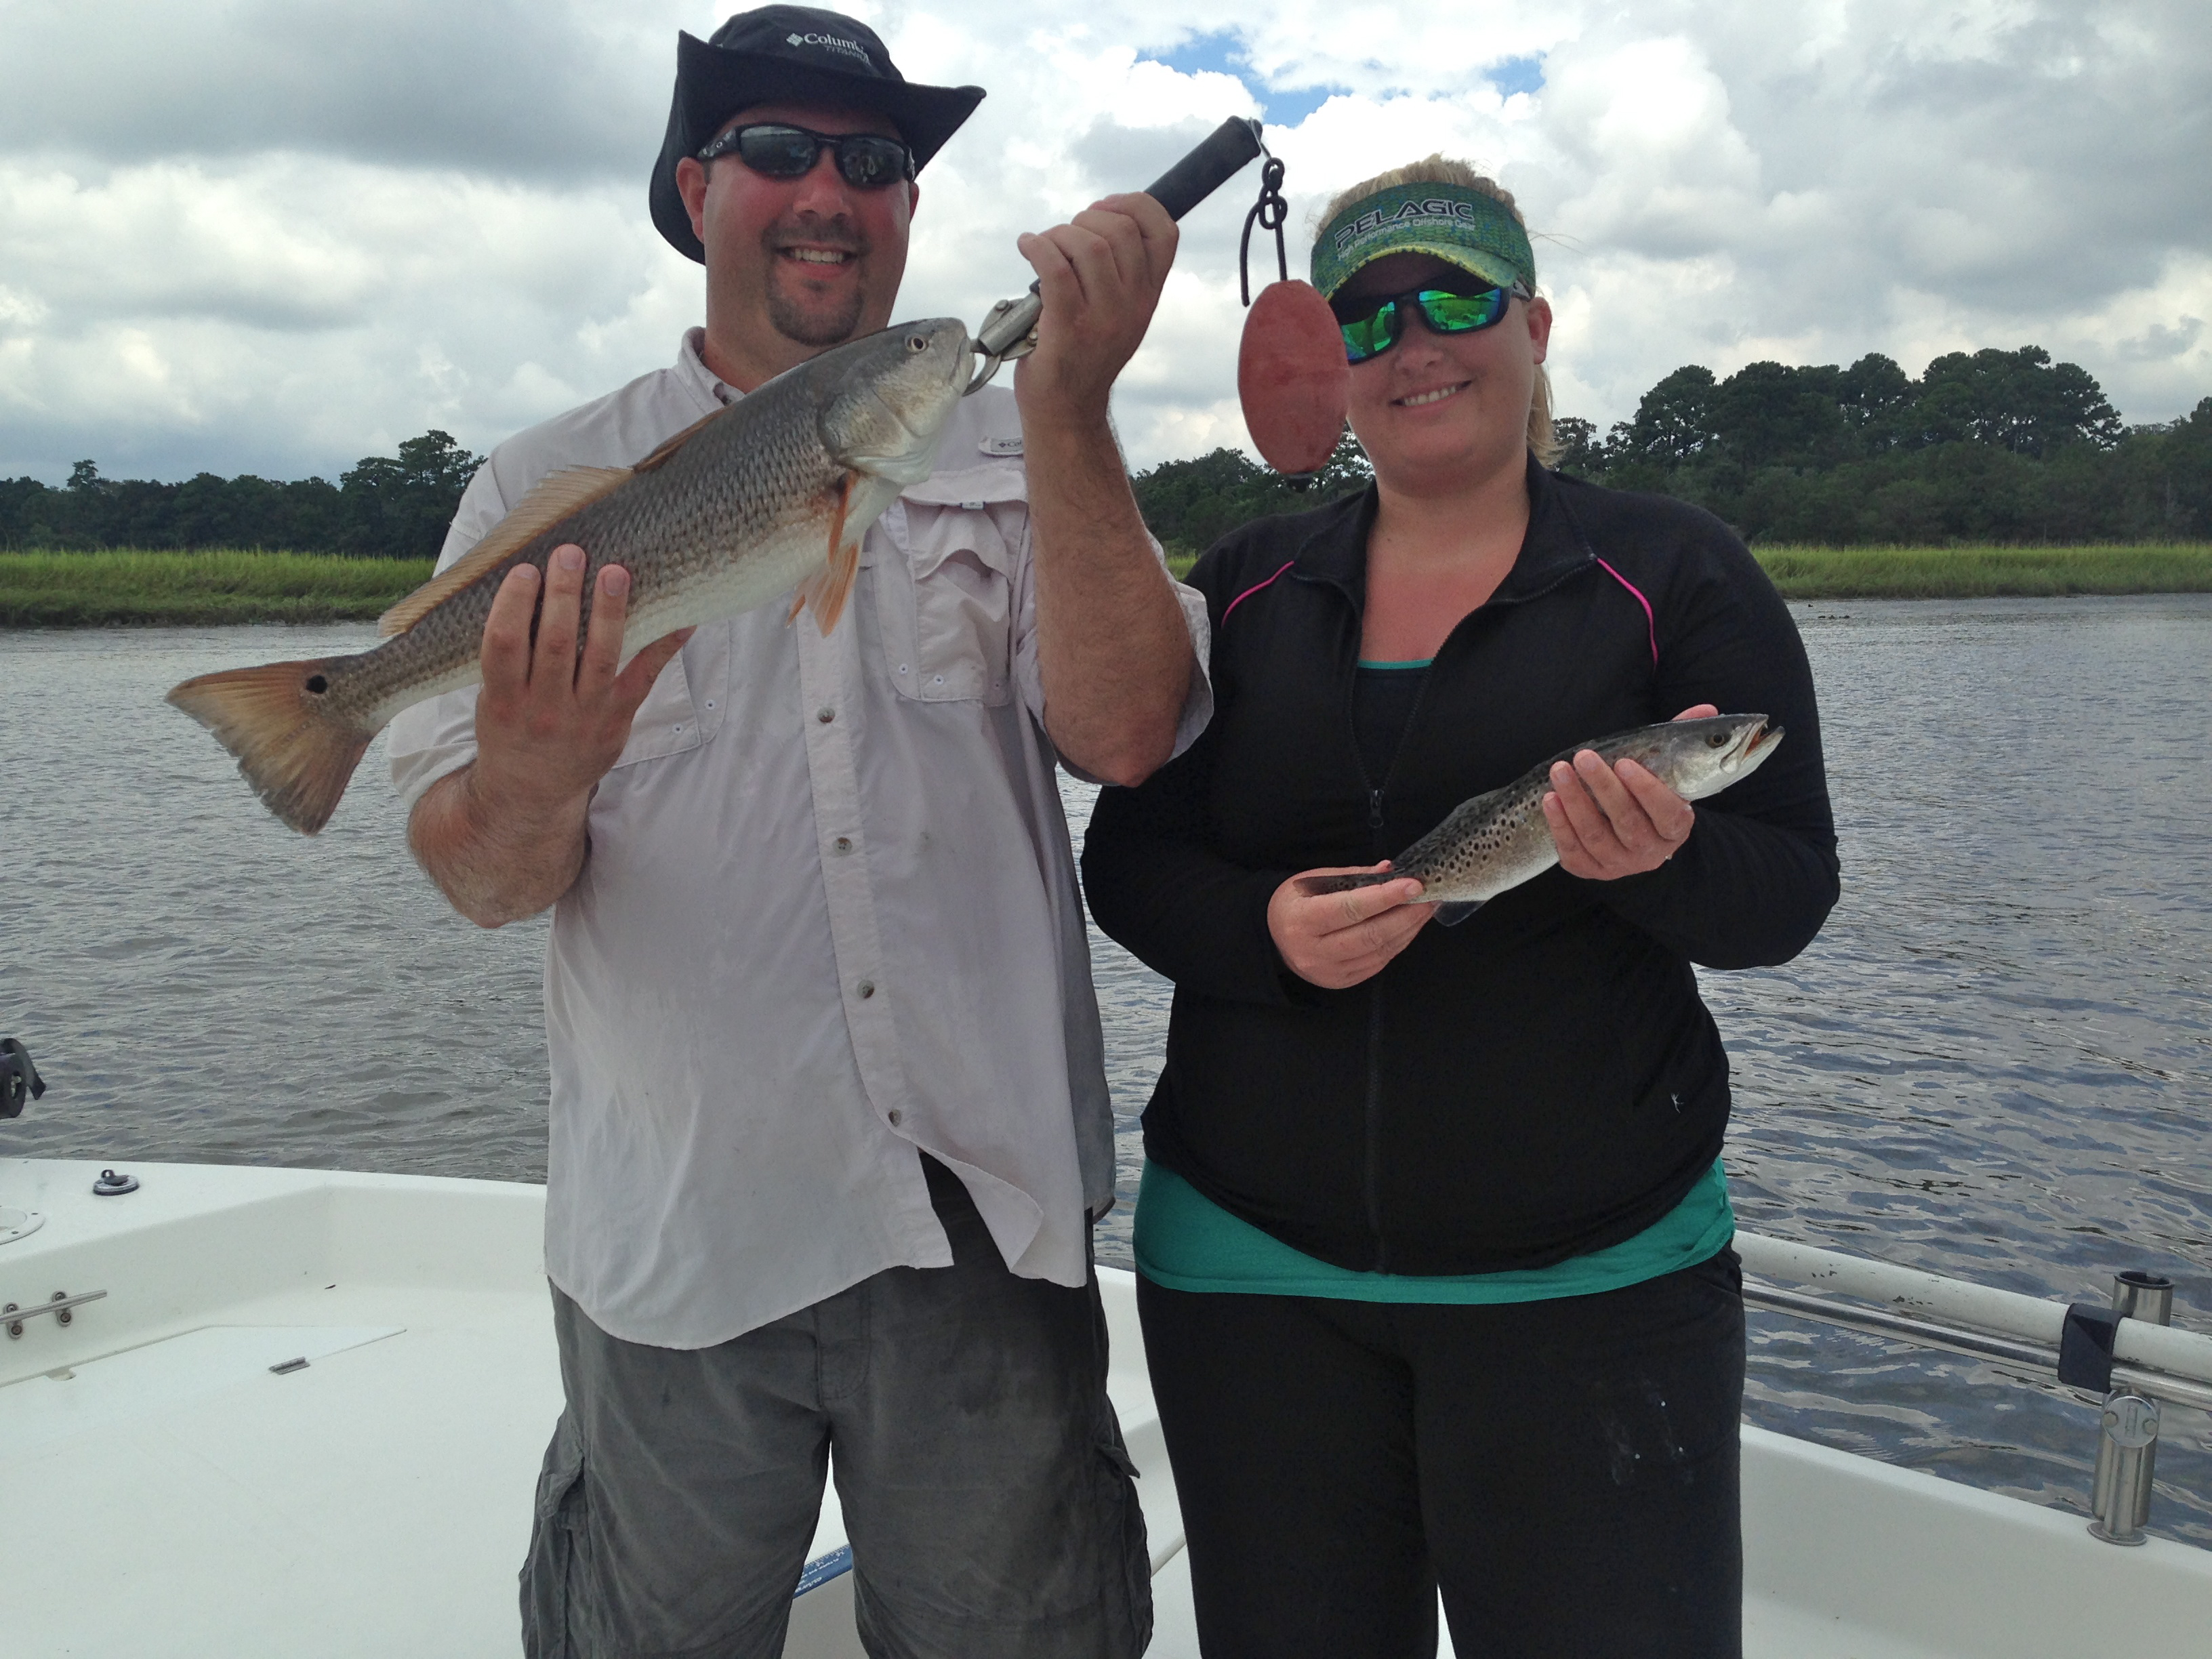 Michael Freeman & Daniel Cannon catching seatrout and redfish!